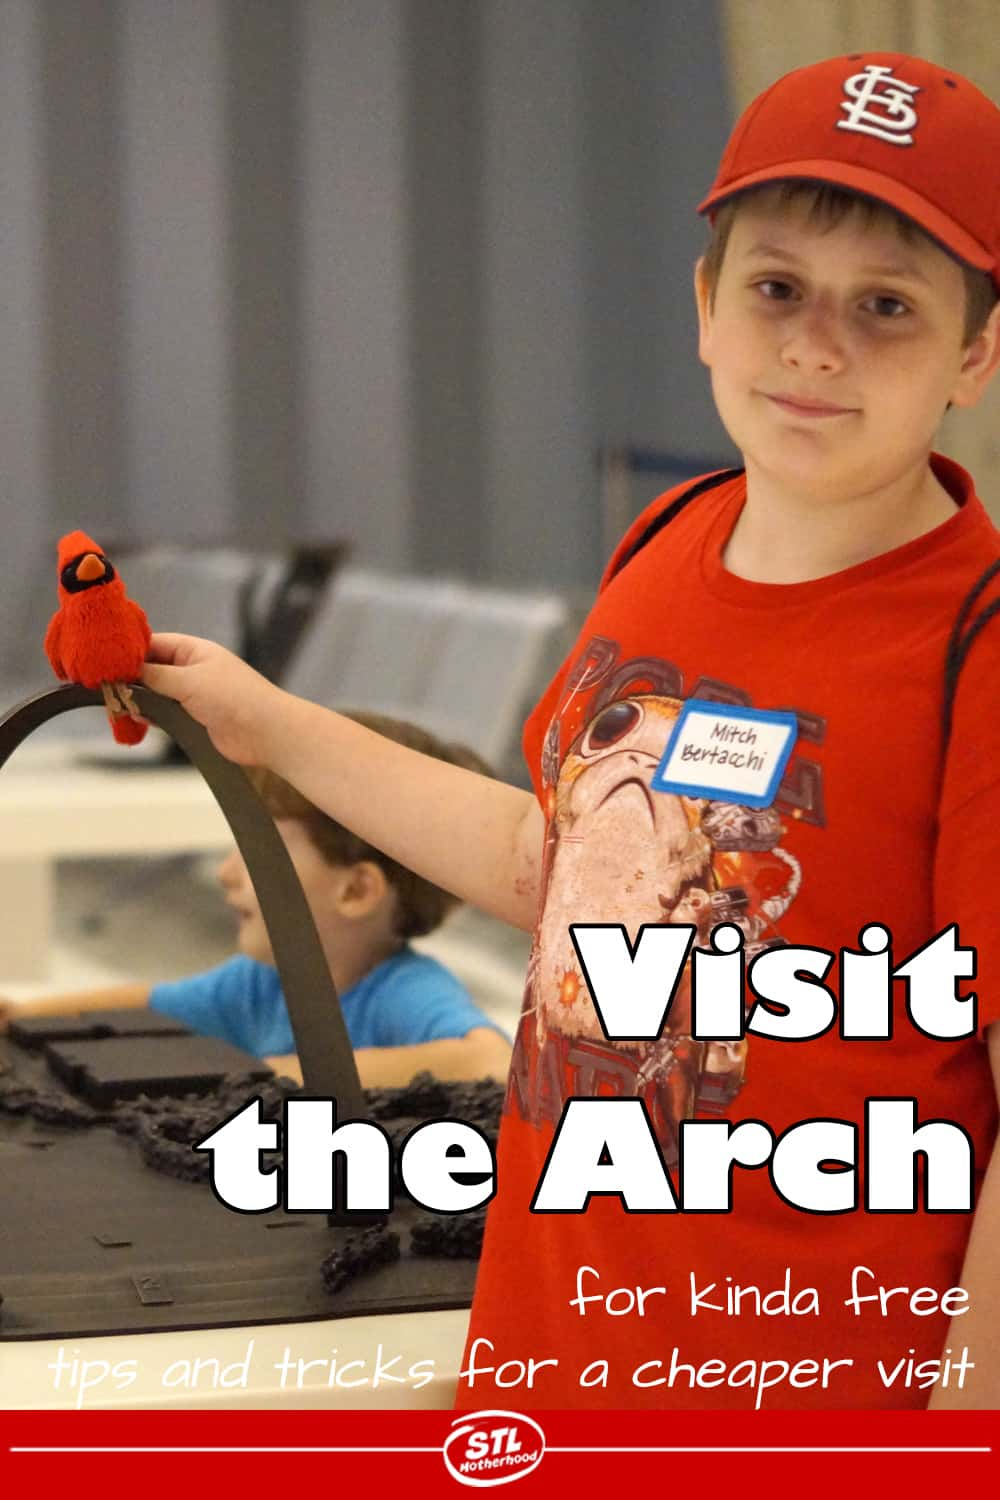 kid at Gateway Arch museum holding toy Cardinal bird on model of the Arch